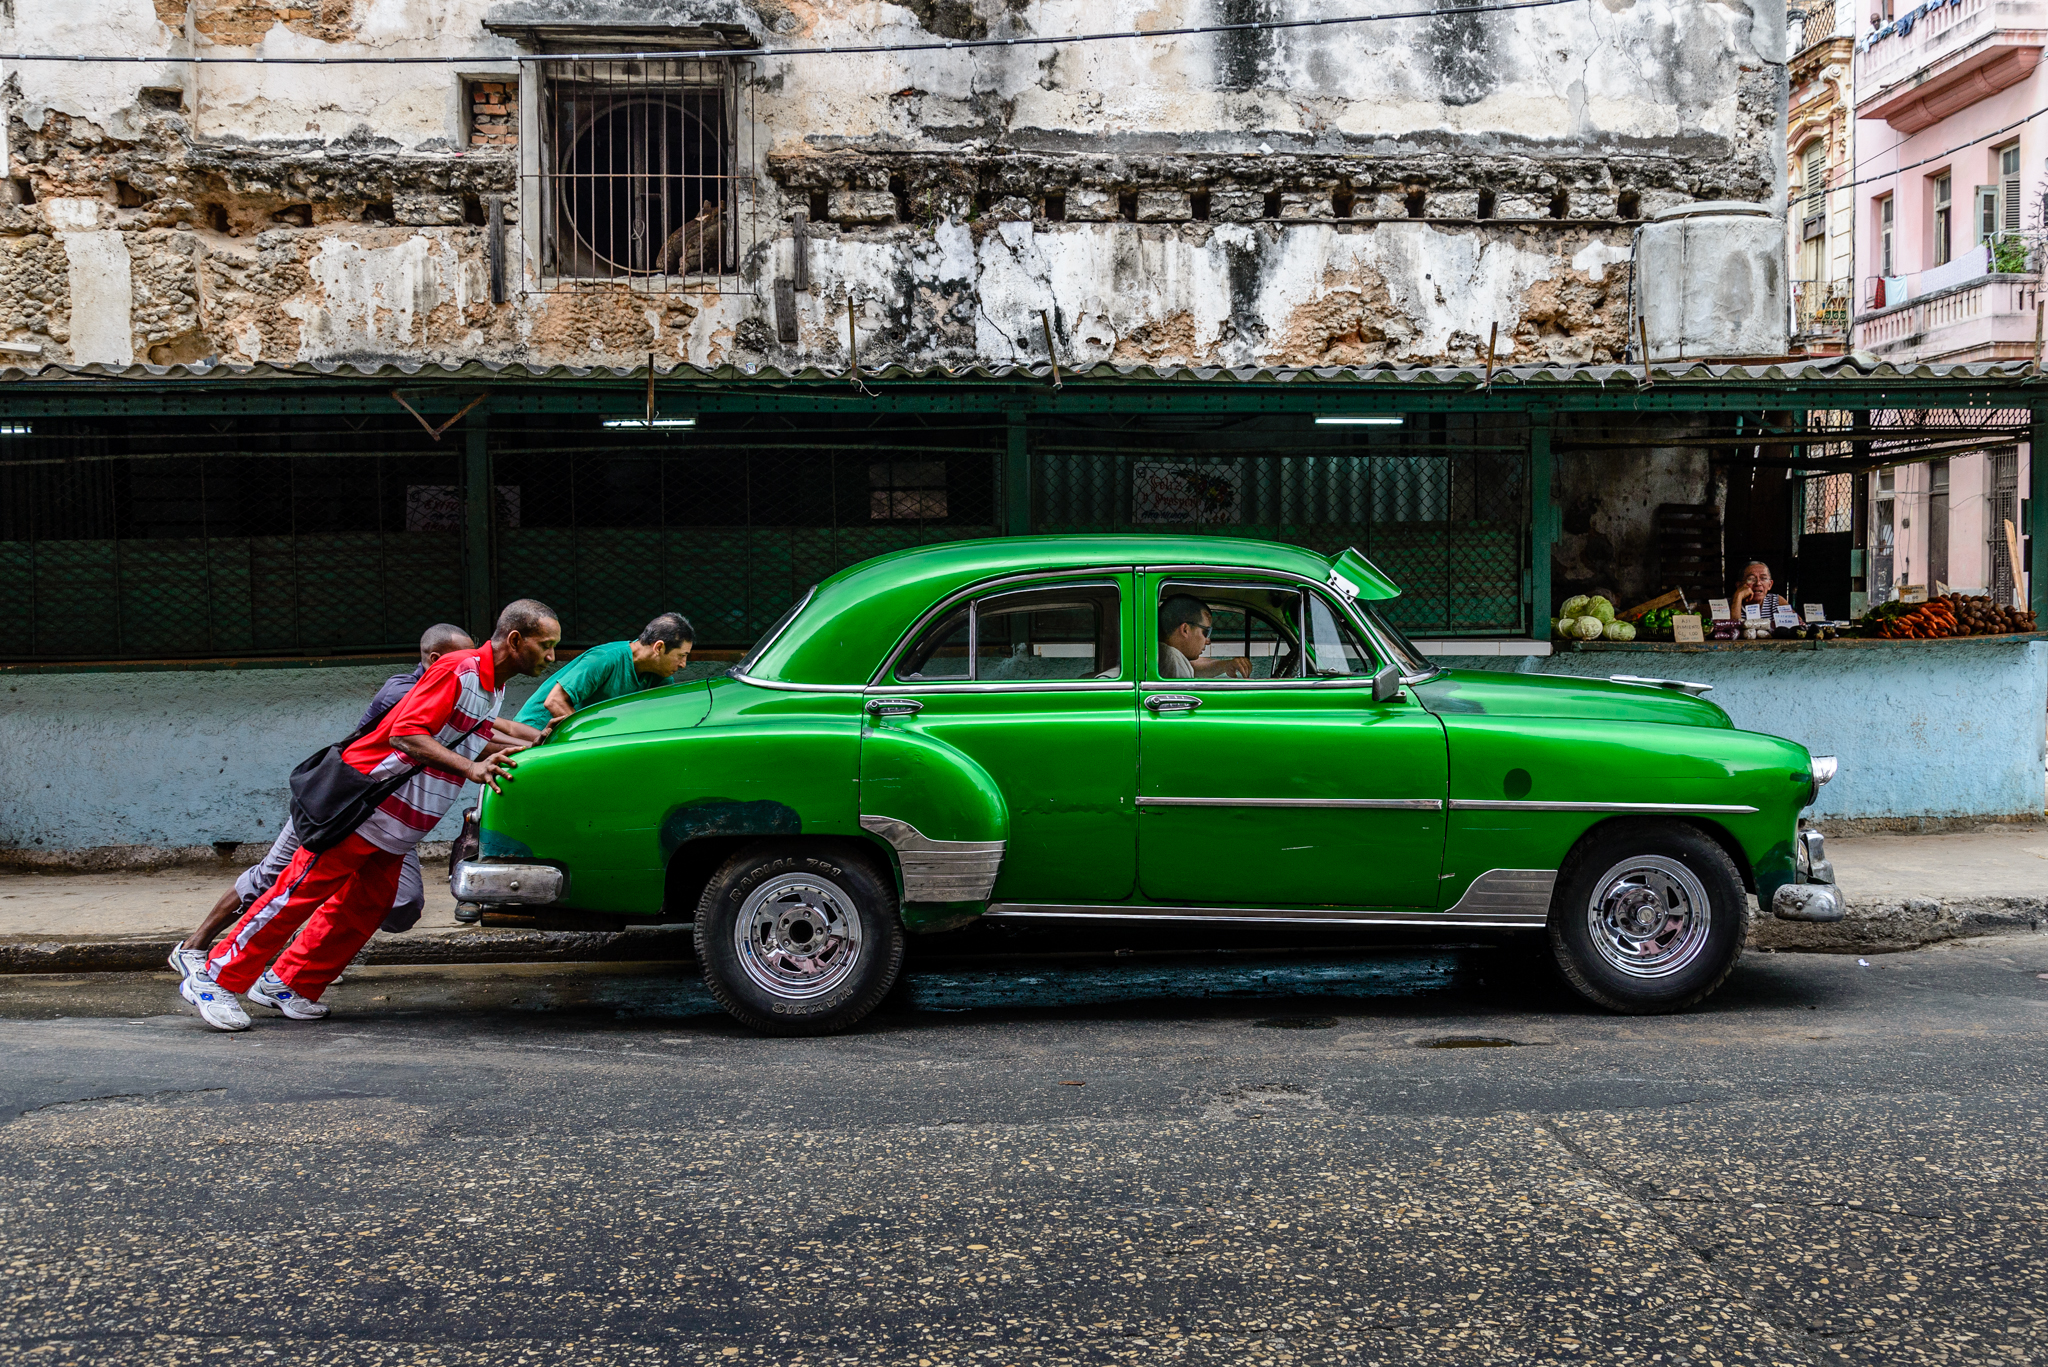 Rock and Roll - Havana - 2013